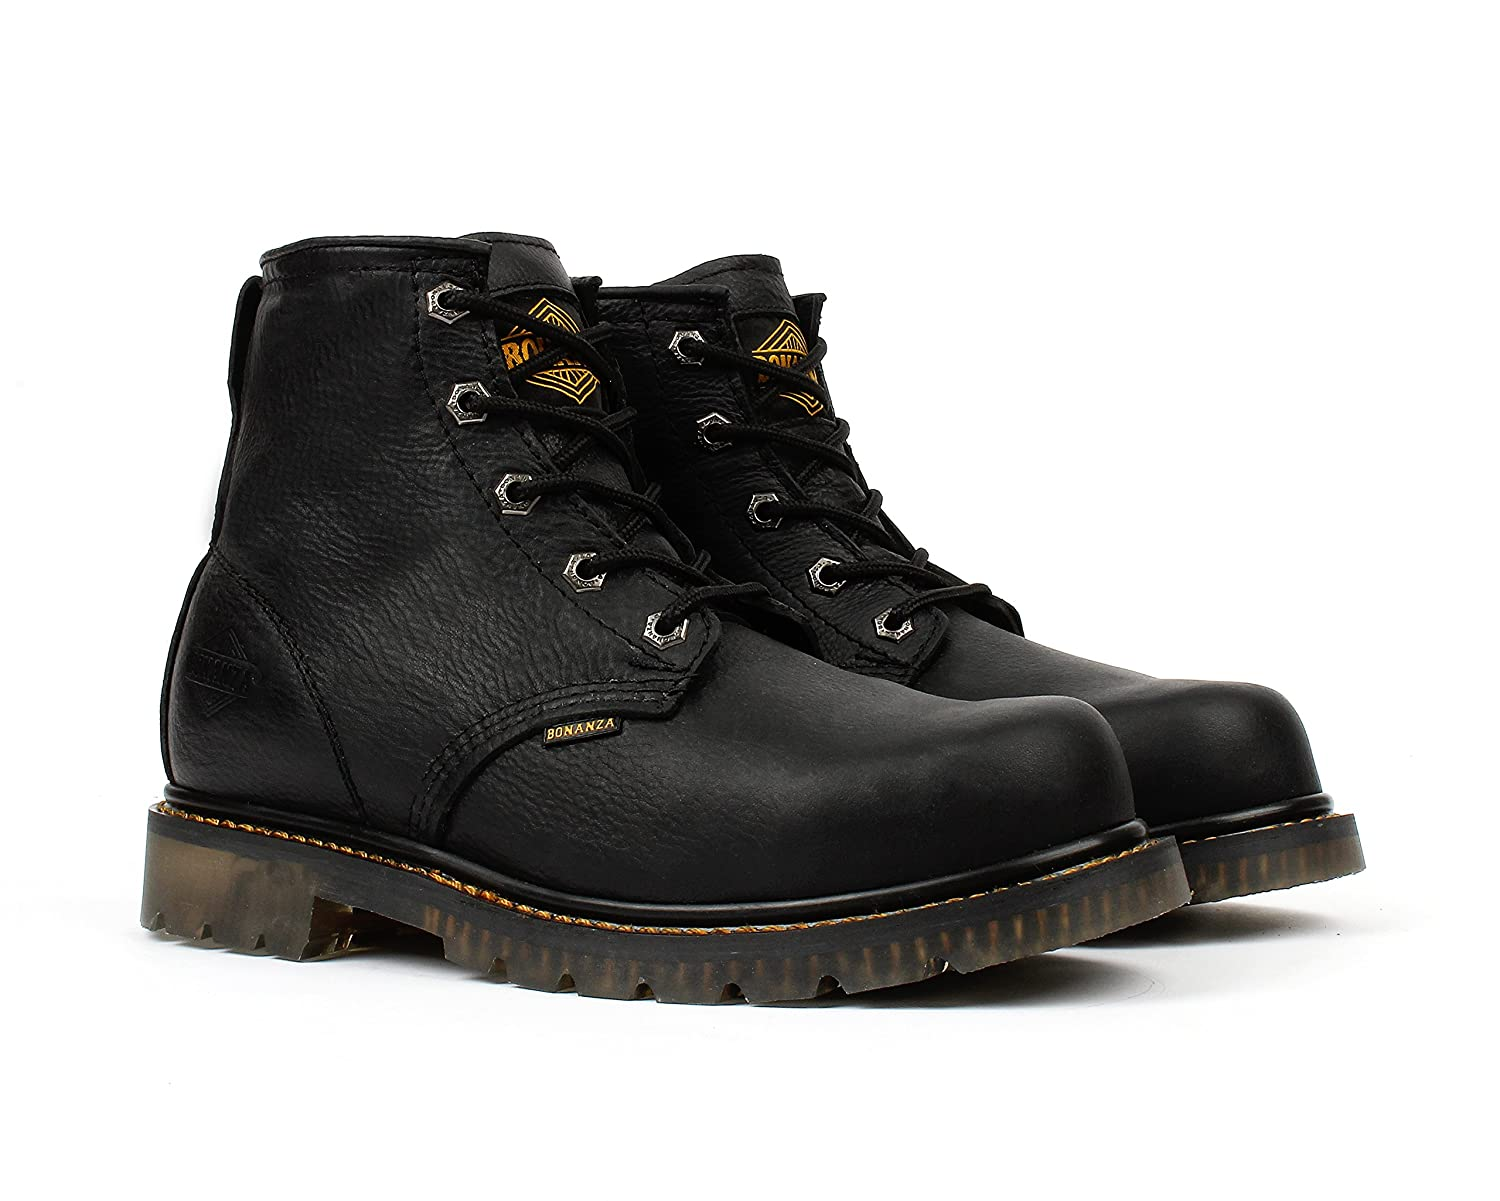 354e7938f45 Amazon.com | Bonanza Boots Goodyear Men's 6